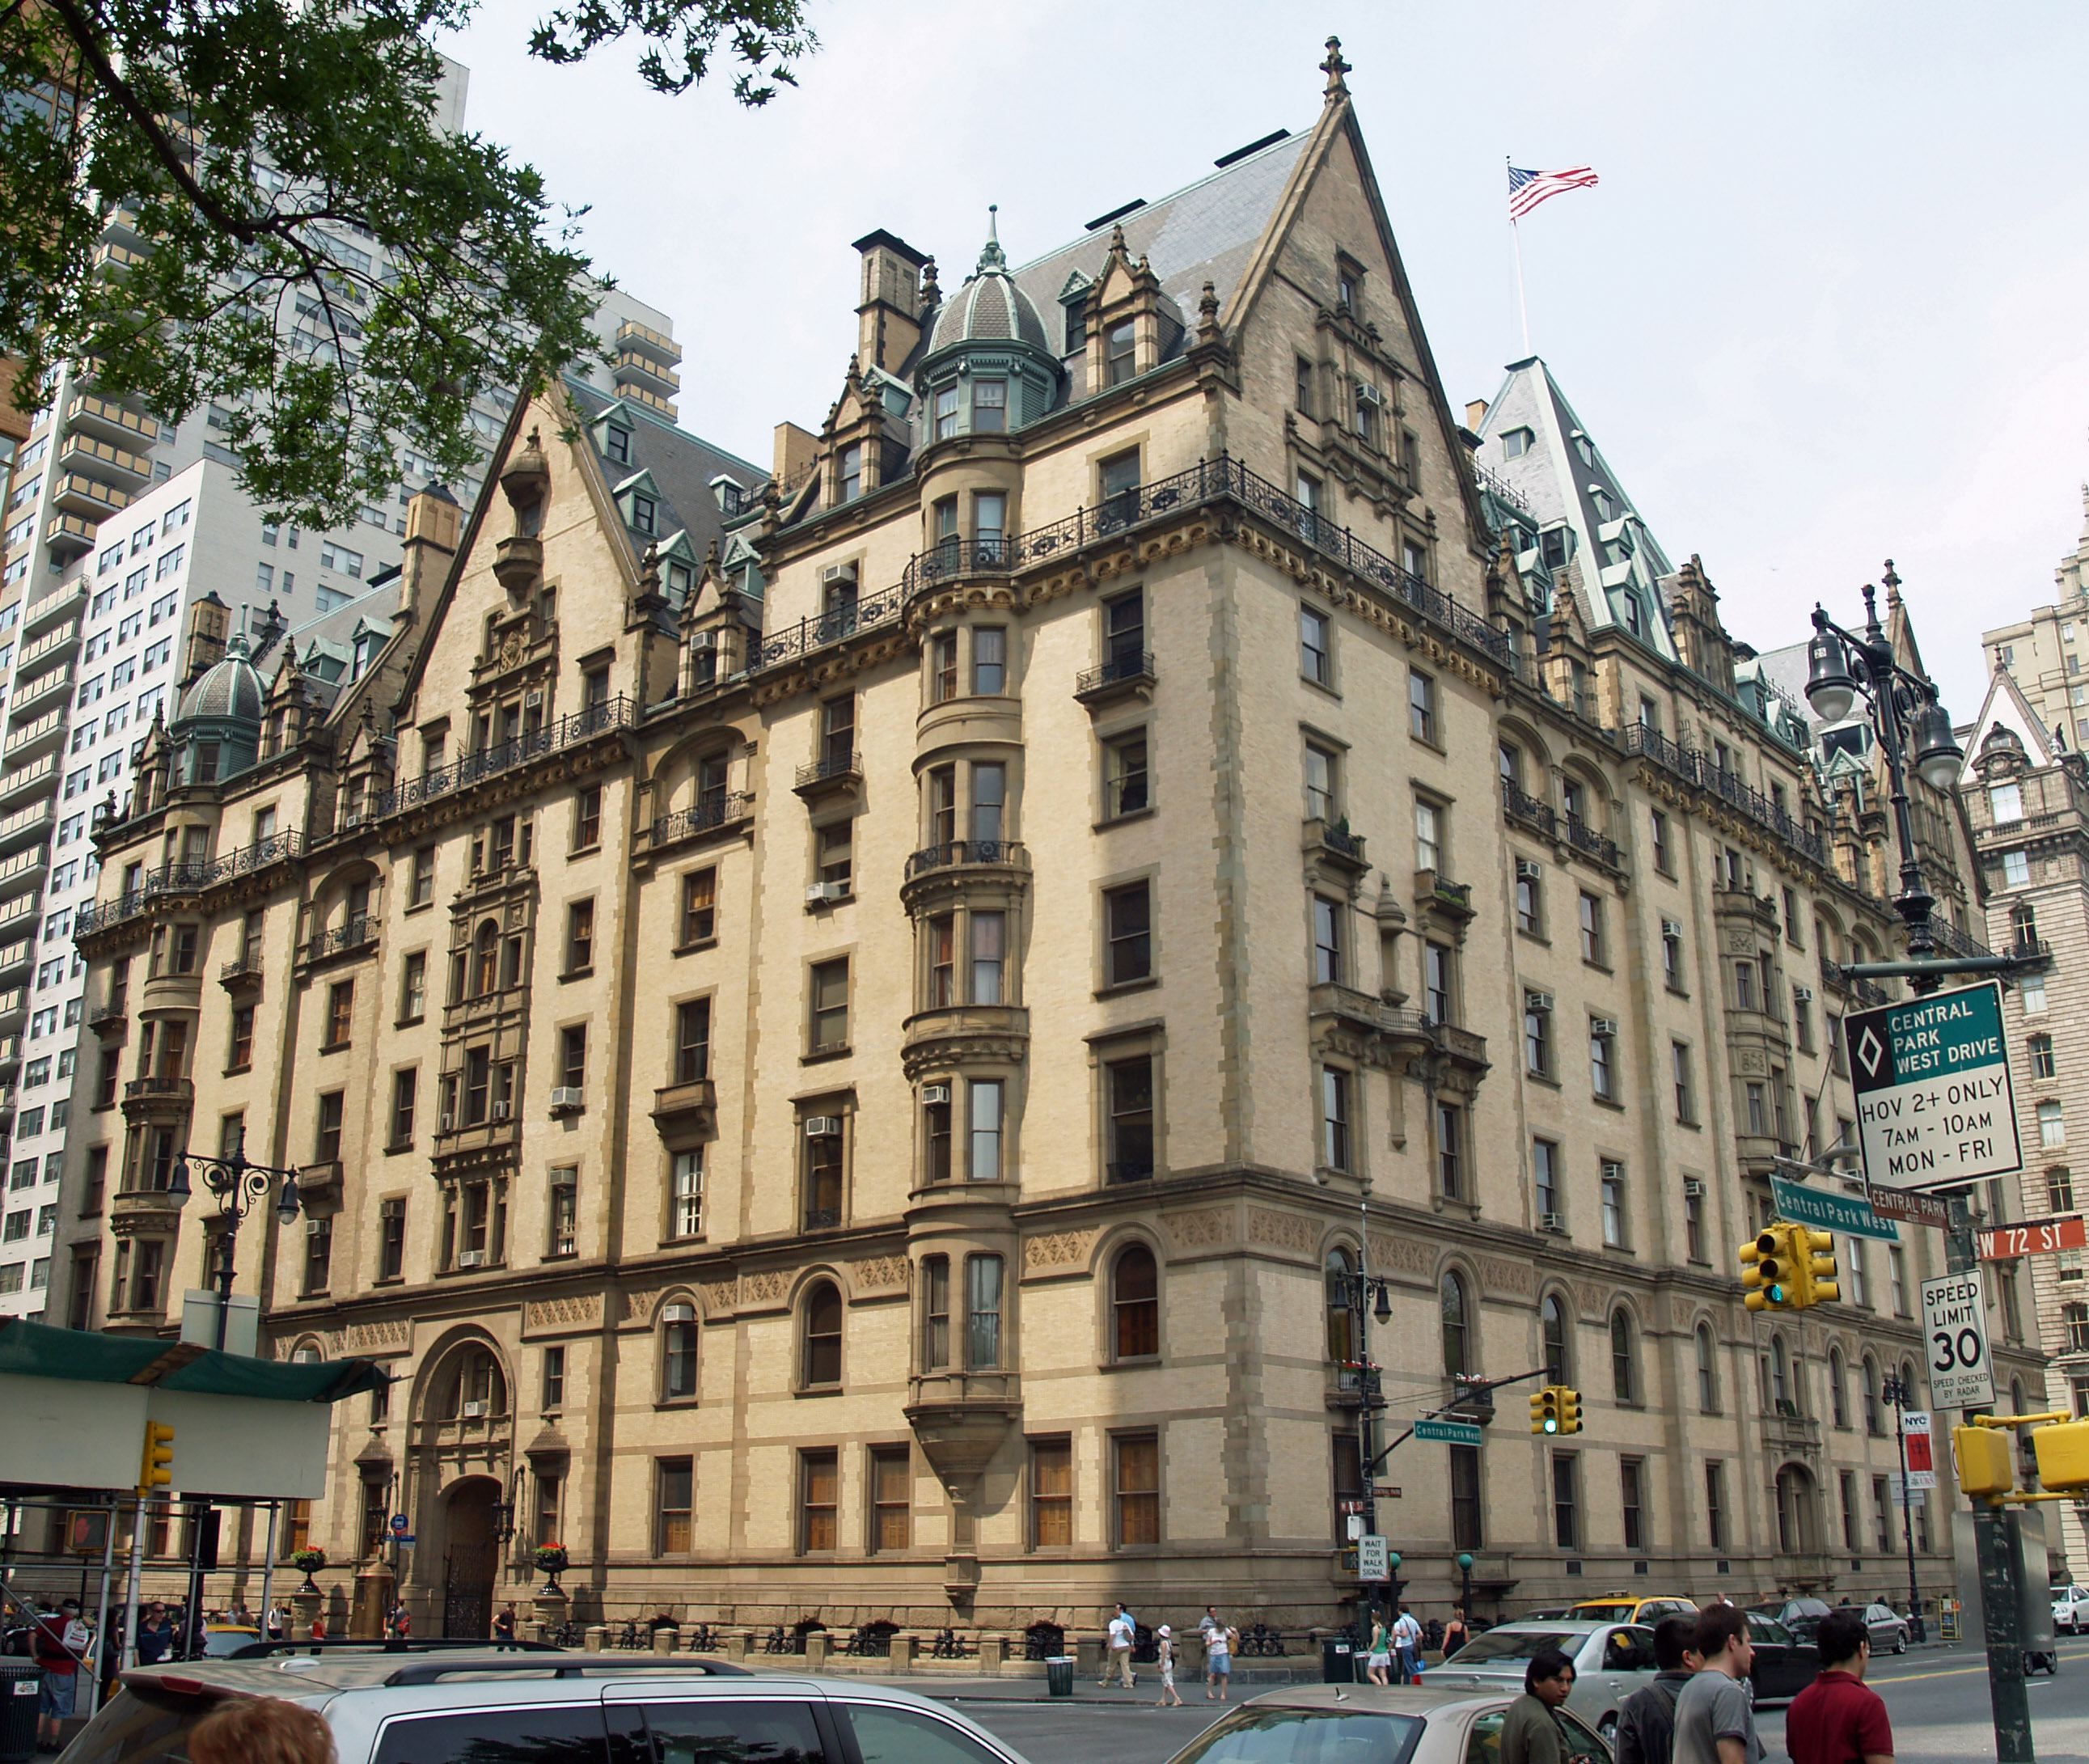 The Dakota: John Lennon's New York City Apartment Building